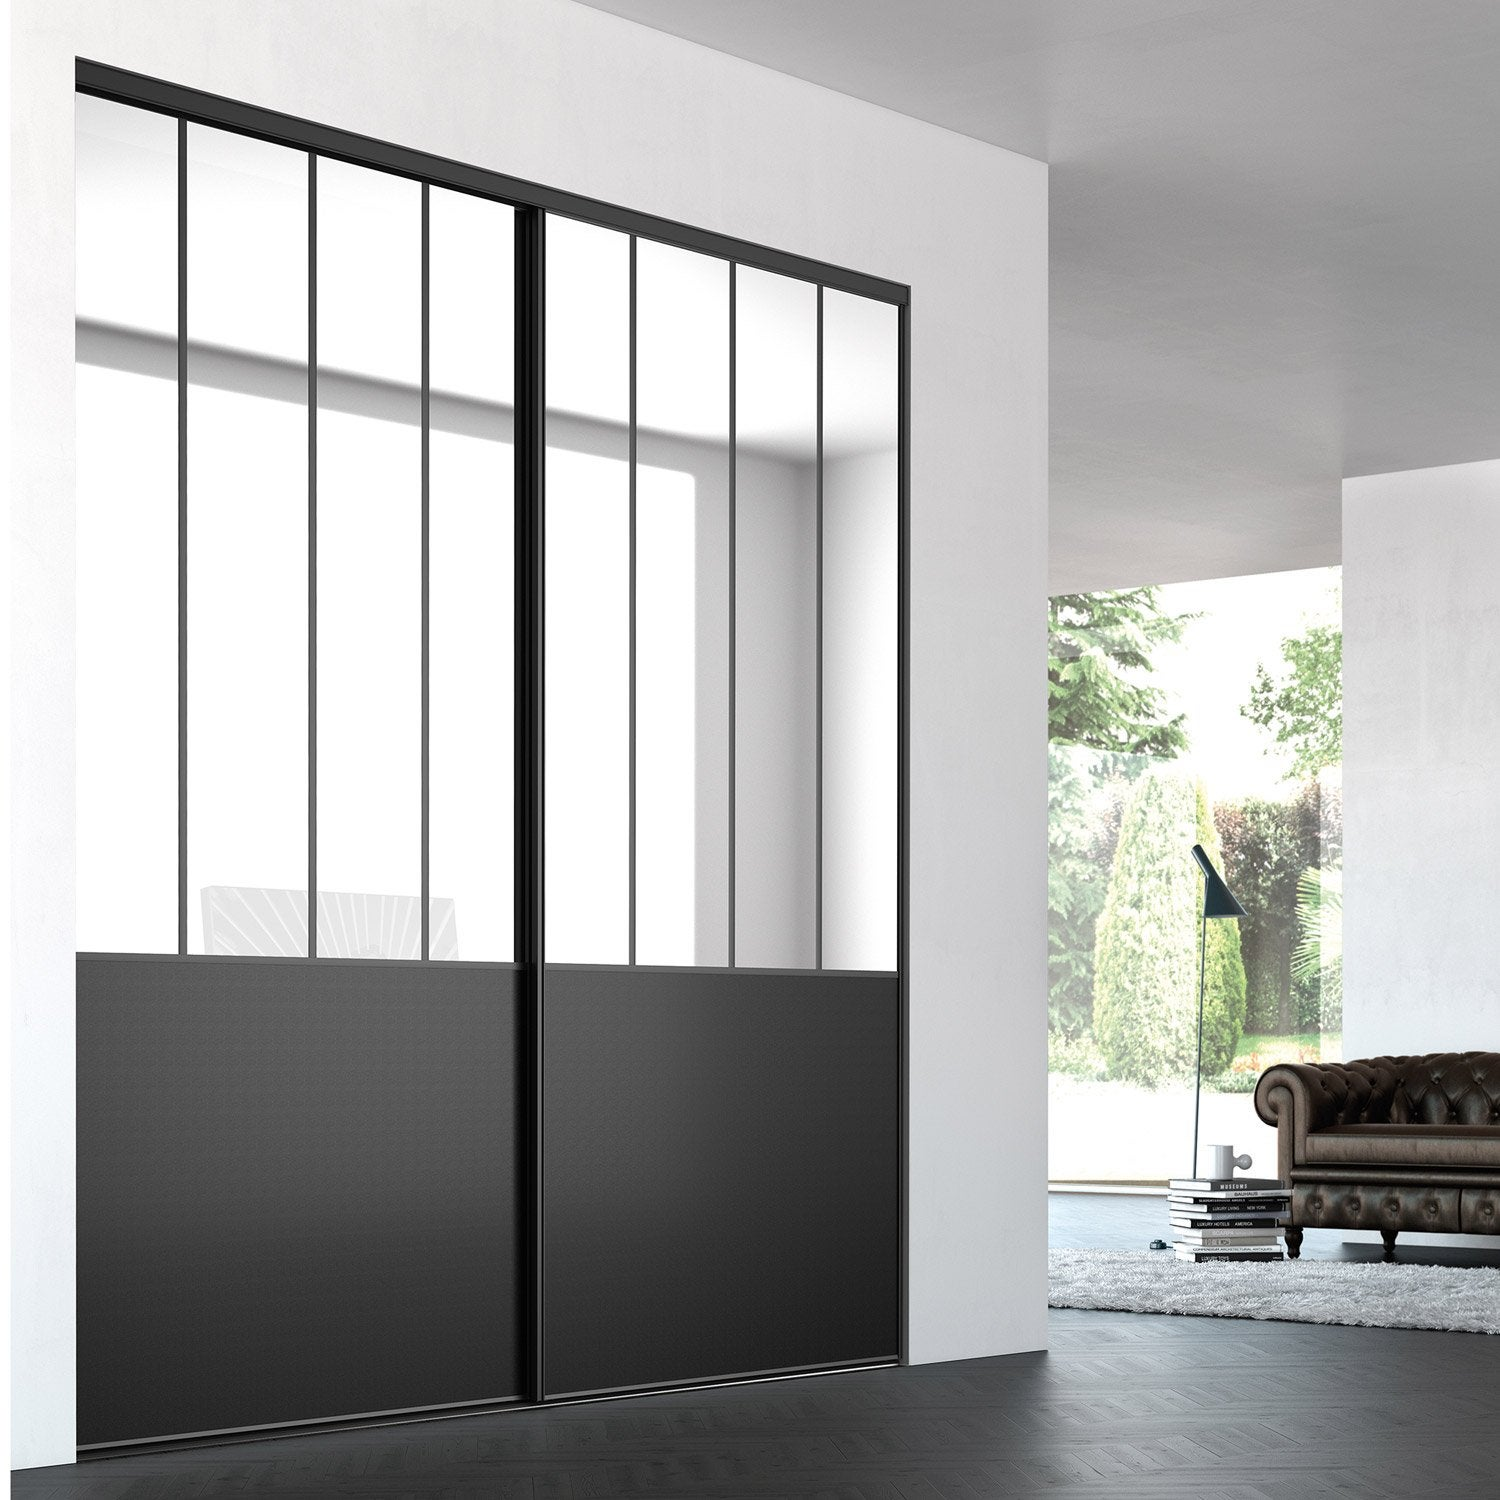 porte de placard coulissante sur mesure iliko loft de 100 1 120 cm leroy merlin. Black Bedroom Furniture Sets. Home Design Ideas